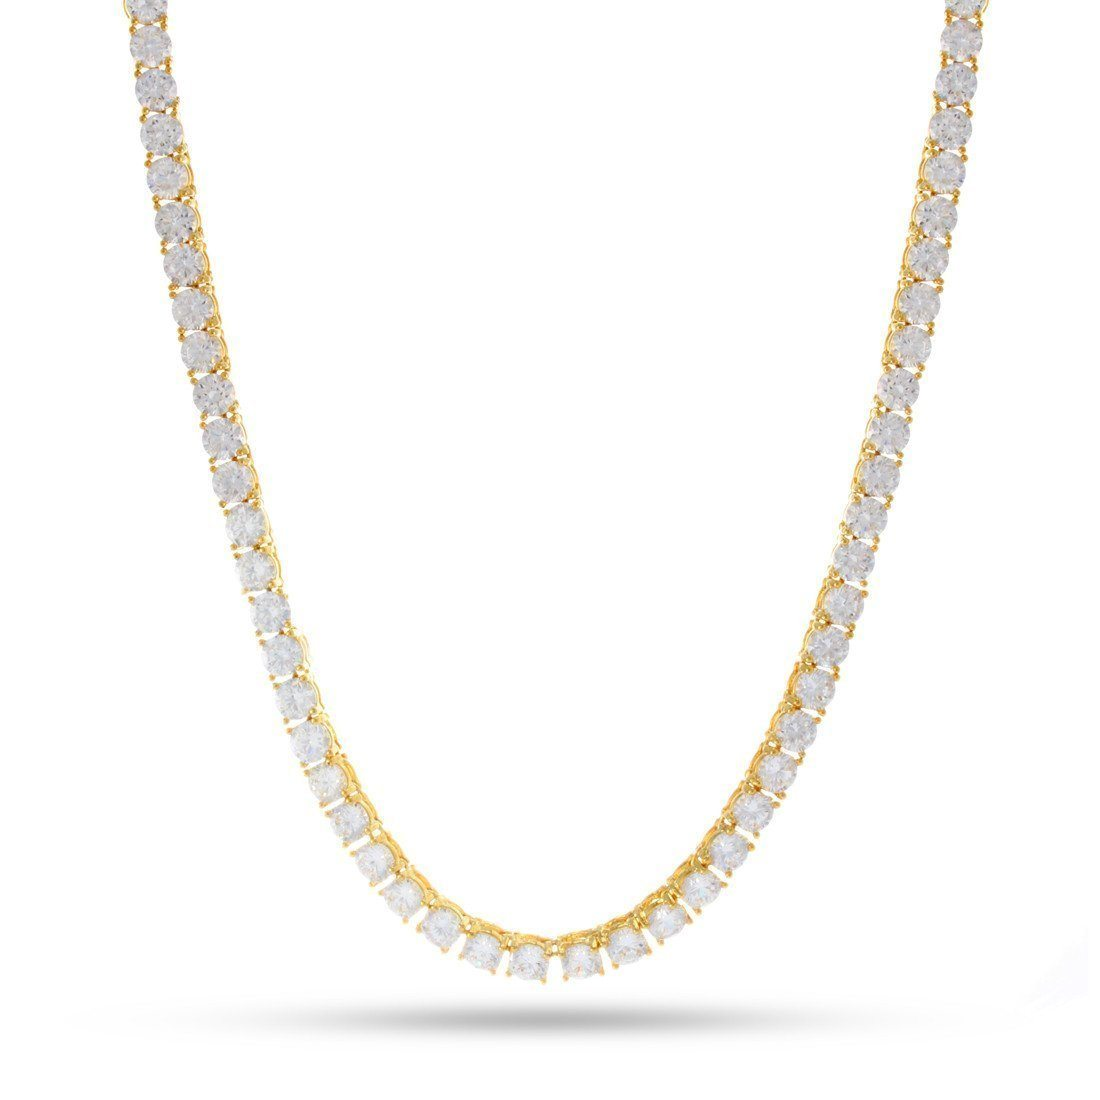 5mm, 14K Gold Single Row Tennis Chain